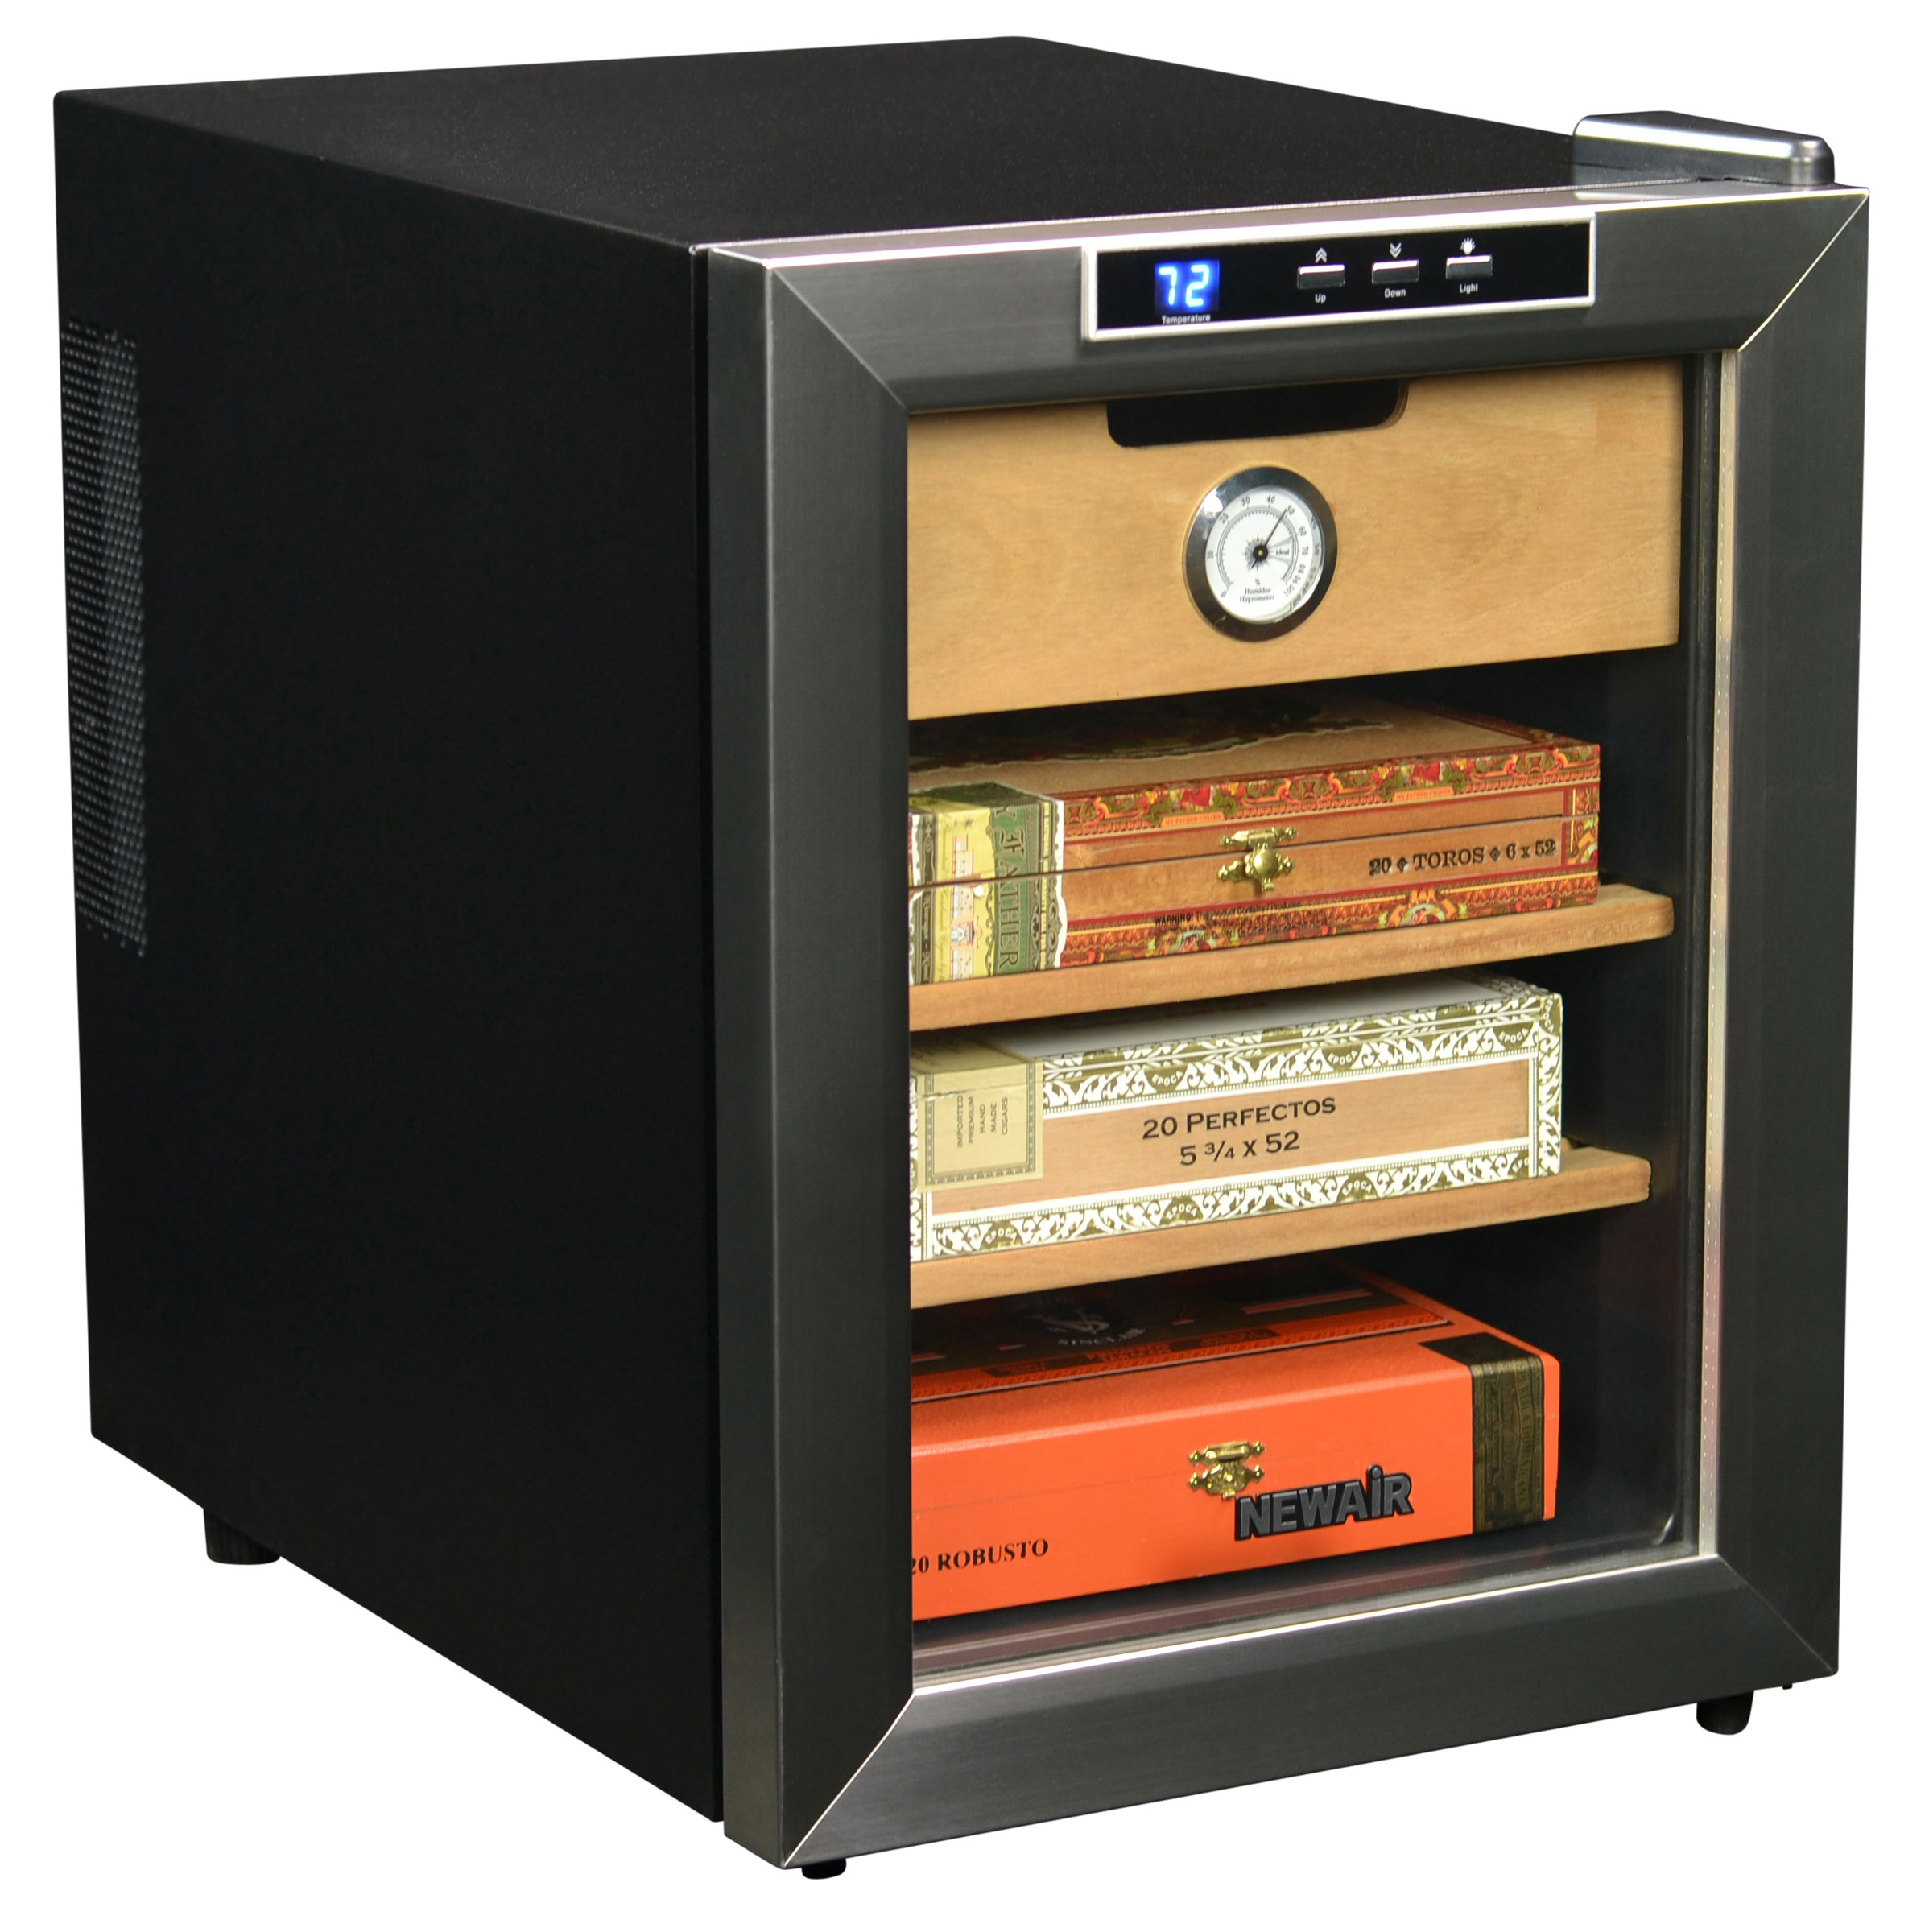 The NewAir CC-100 Thermoelectric Cigar Humidor